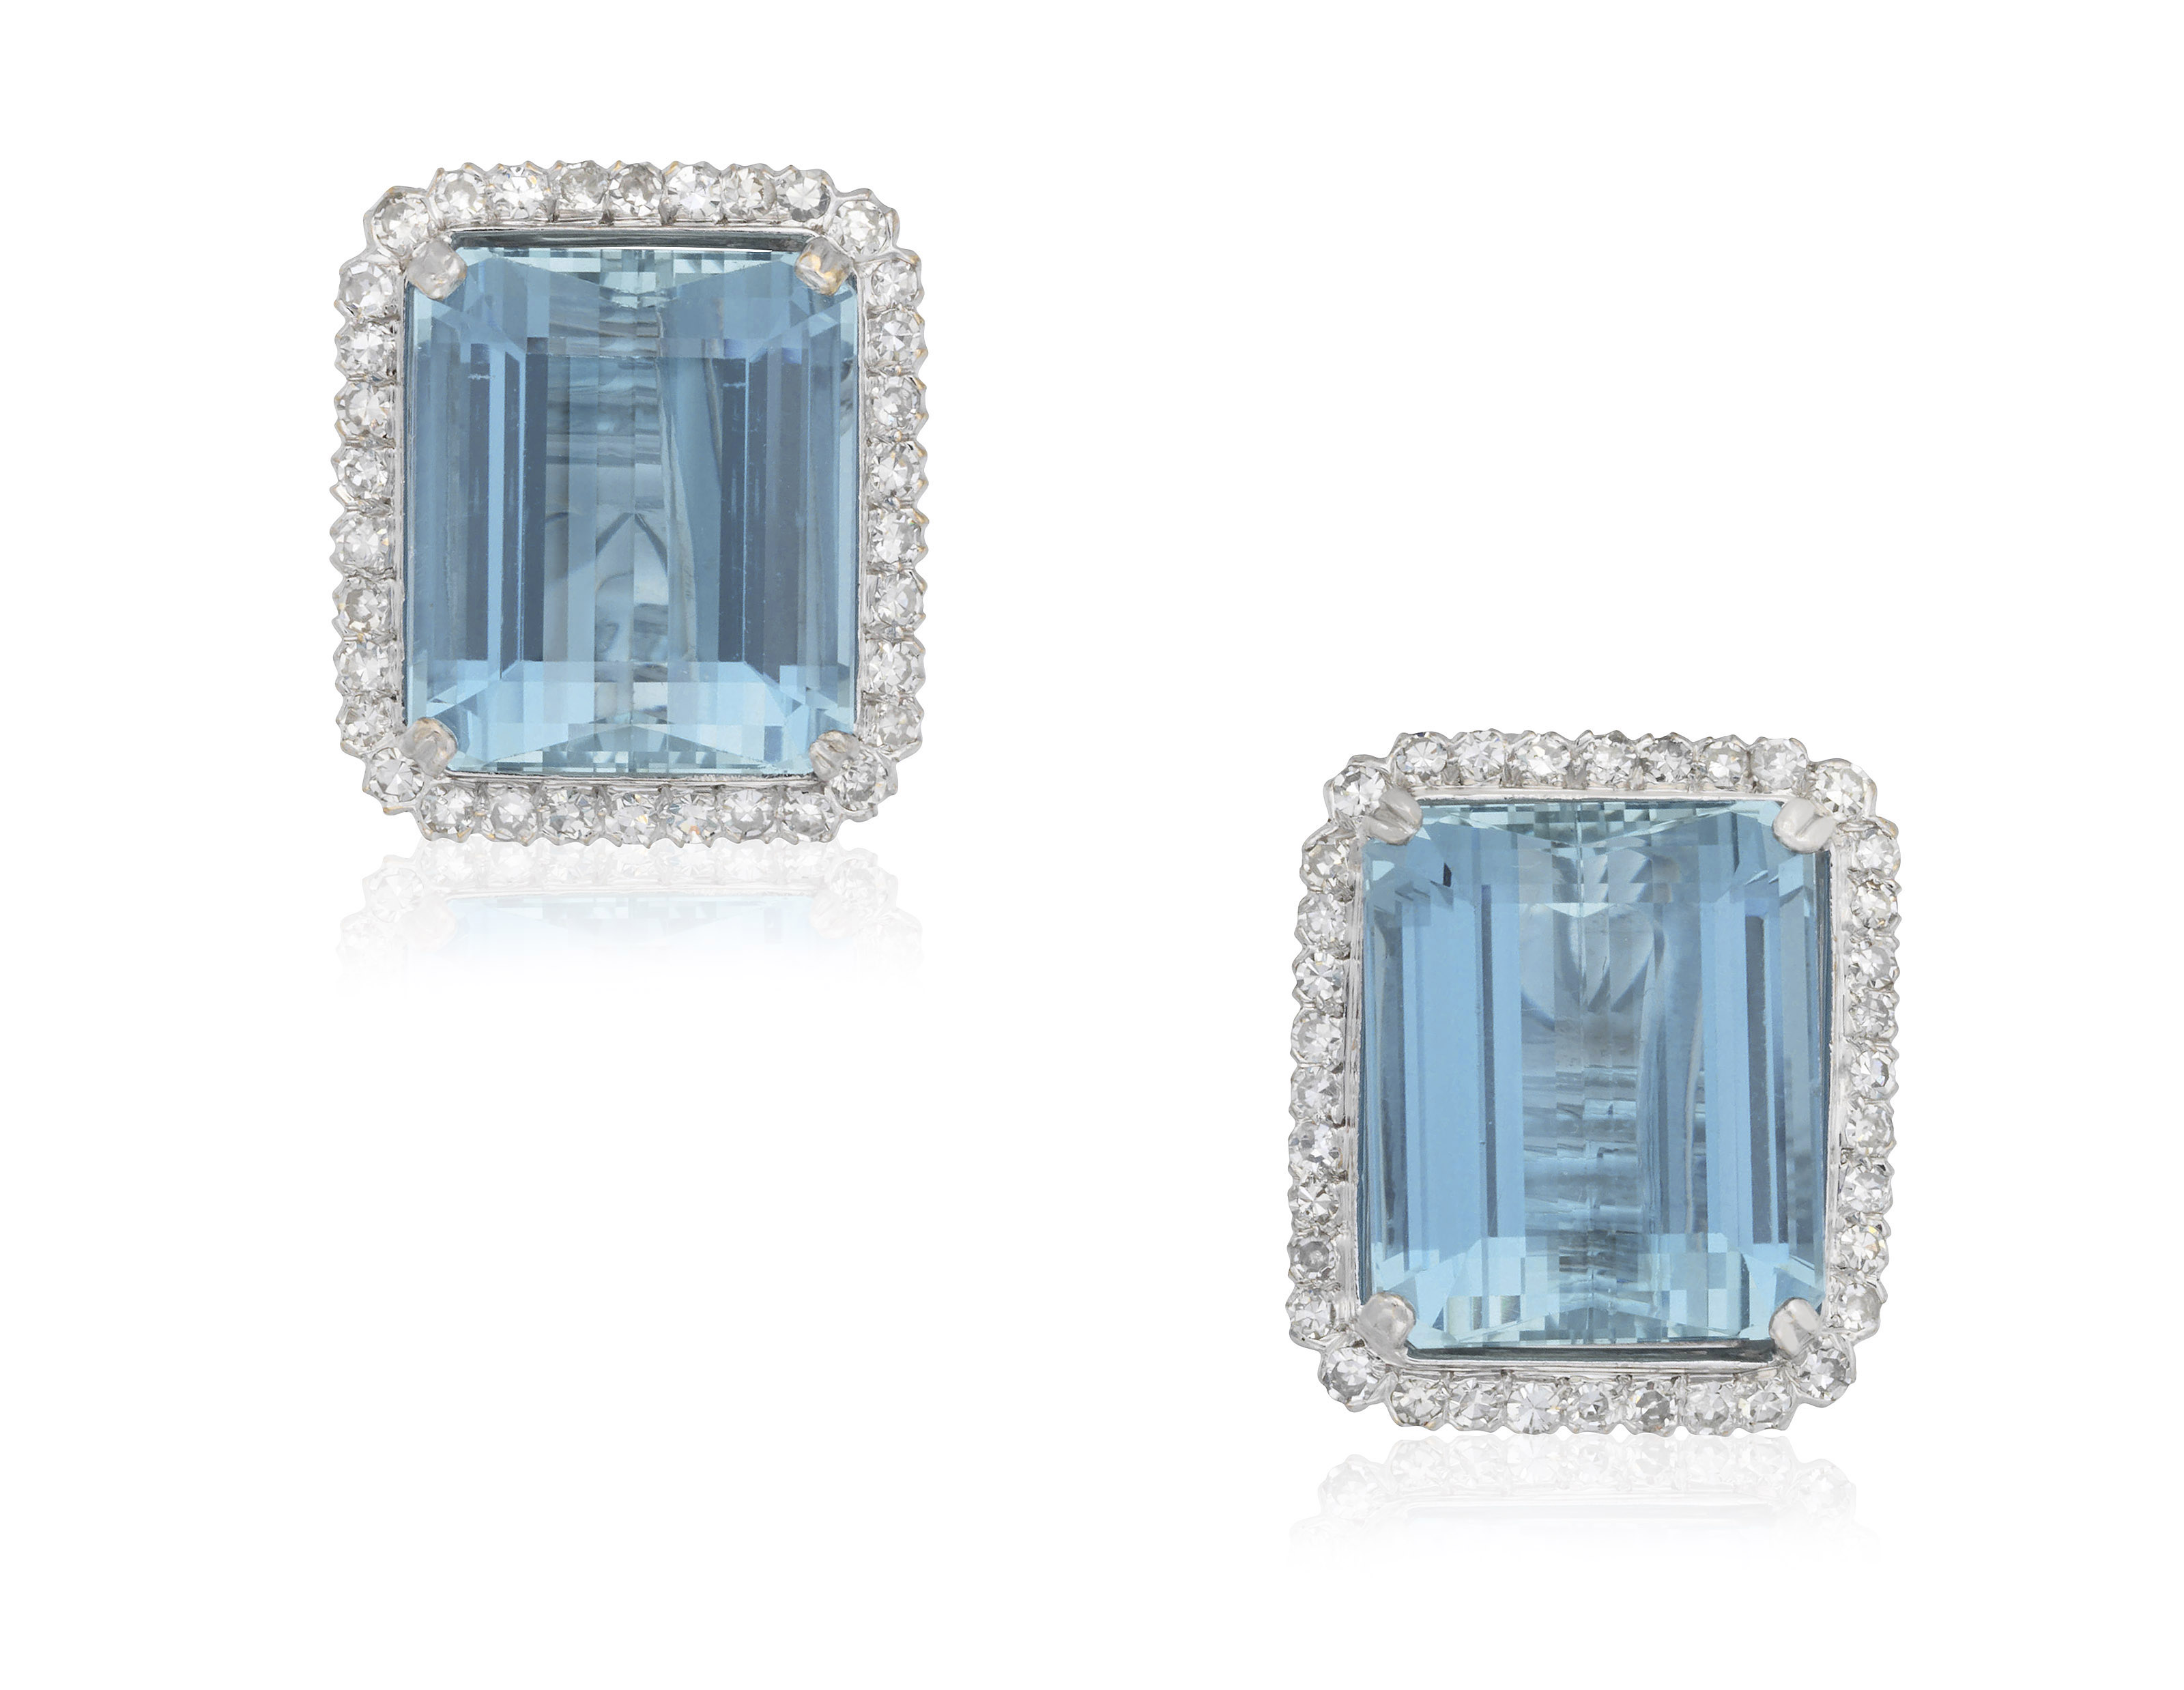 az rectangle byj e silver cz bling jewelry earrings rectangular emerald cut stud diamond